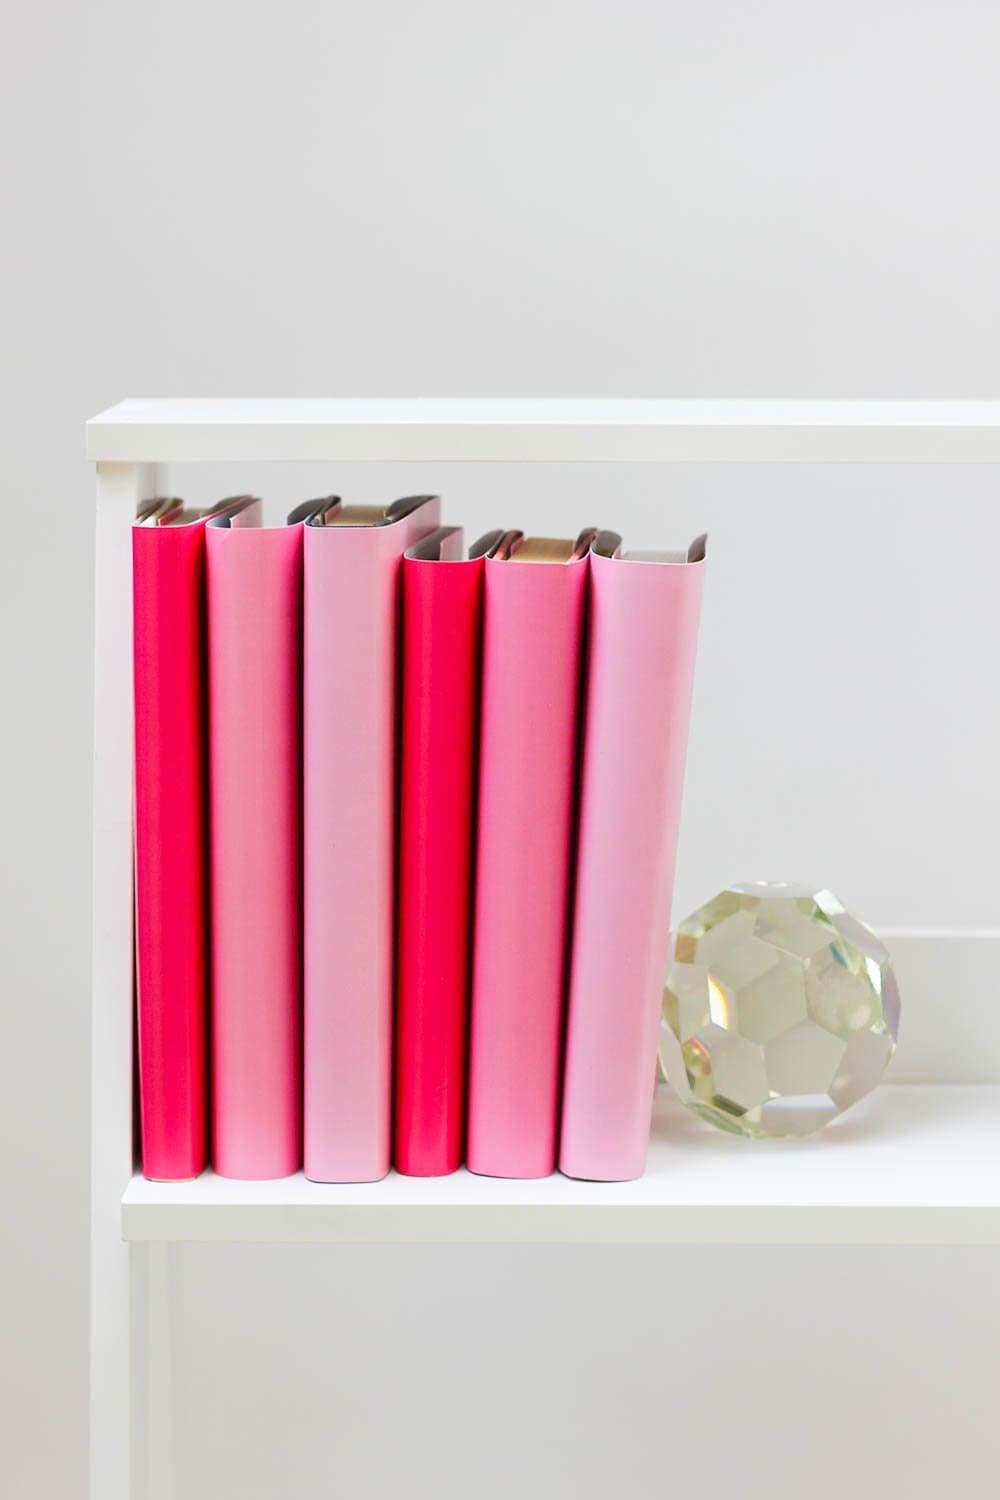 Large and small pink books from pink book covers